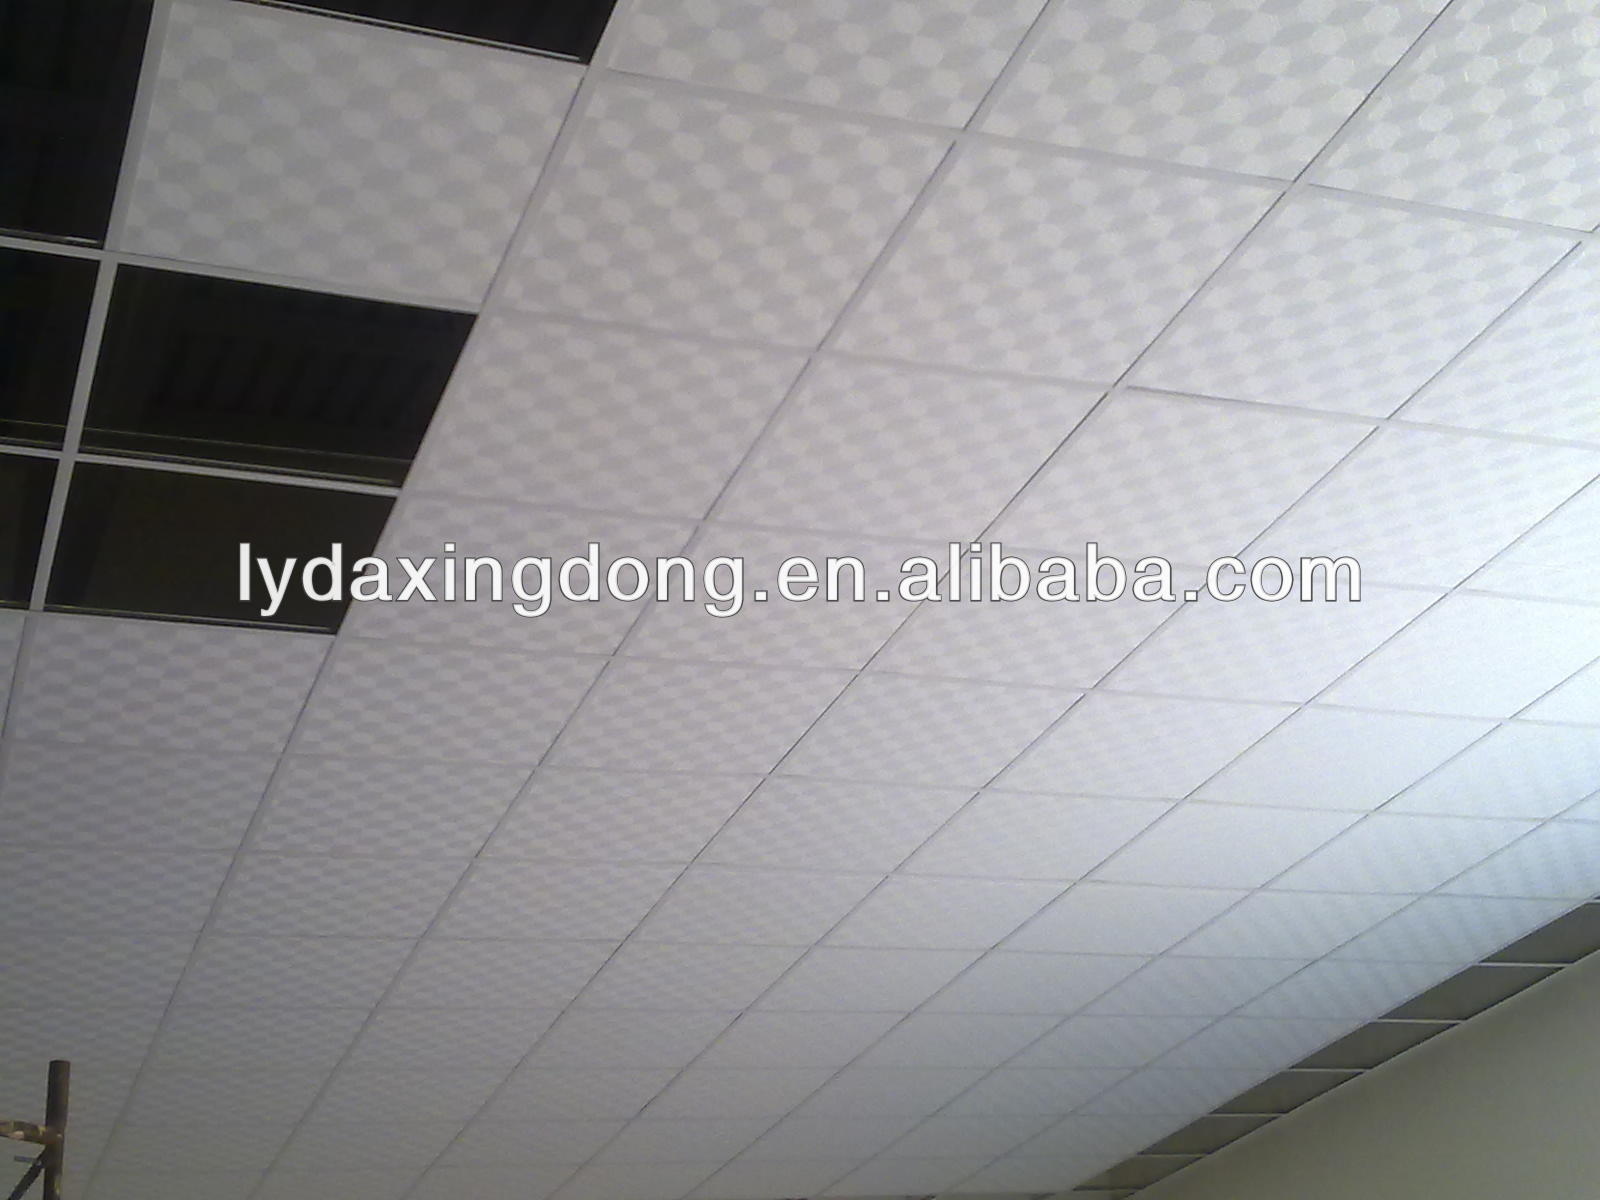 2x2 commercial ceiling tiles 2x2 commercial ceiling tiles suppliers 2x2 commercial ceiling tiles 2x2 commercial ceiling tiles suppliers and manufacturers at alibaba dailygadgetfo Images